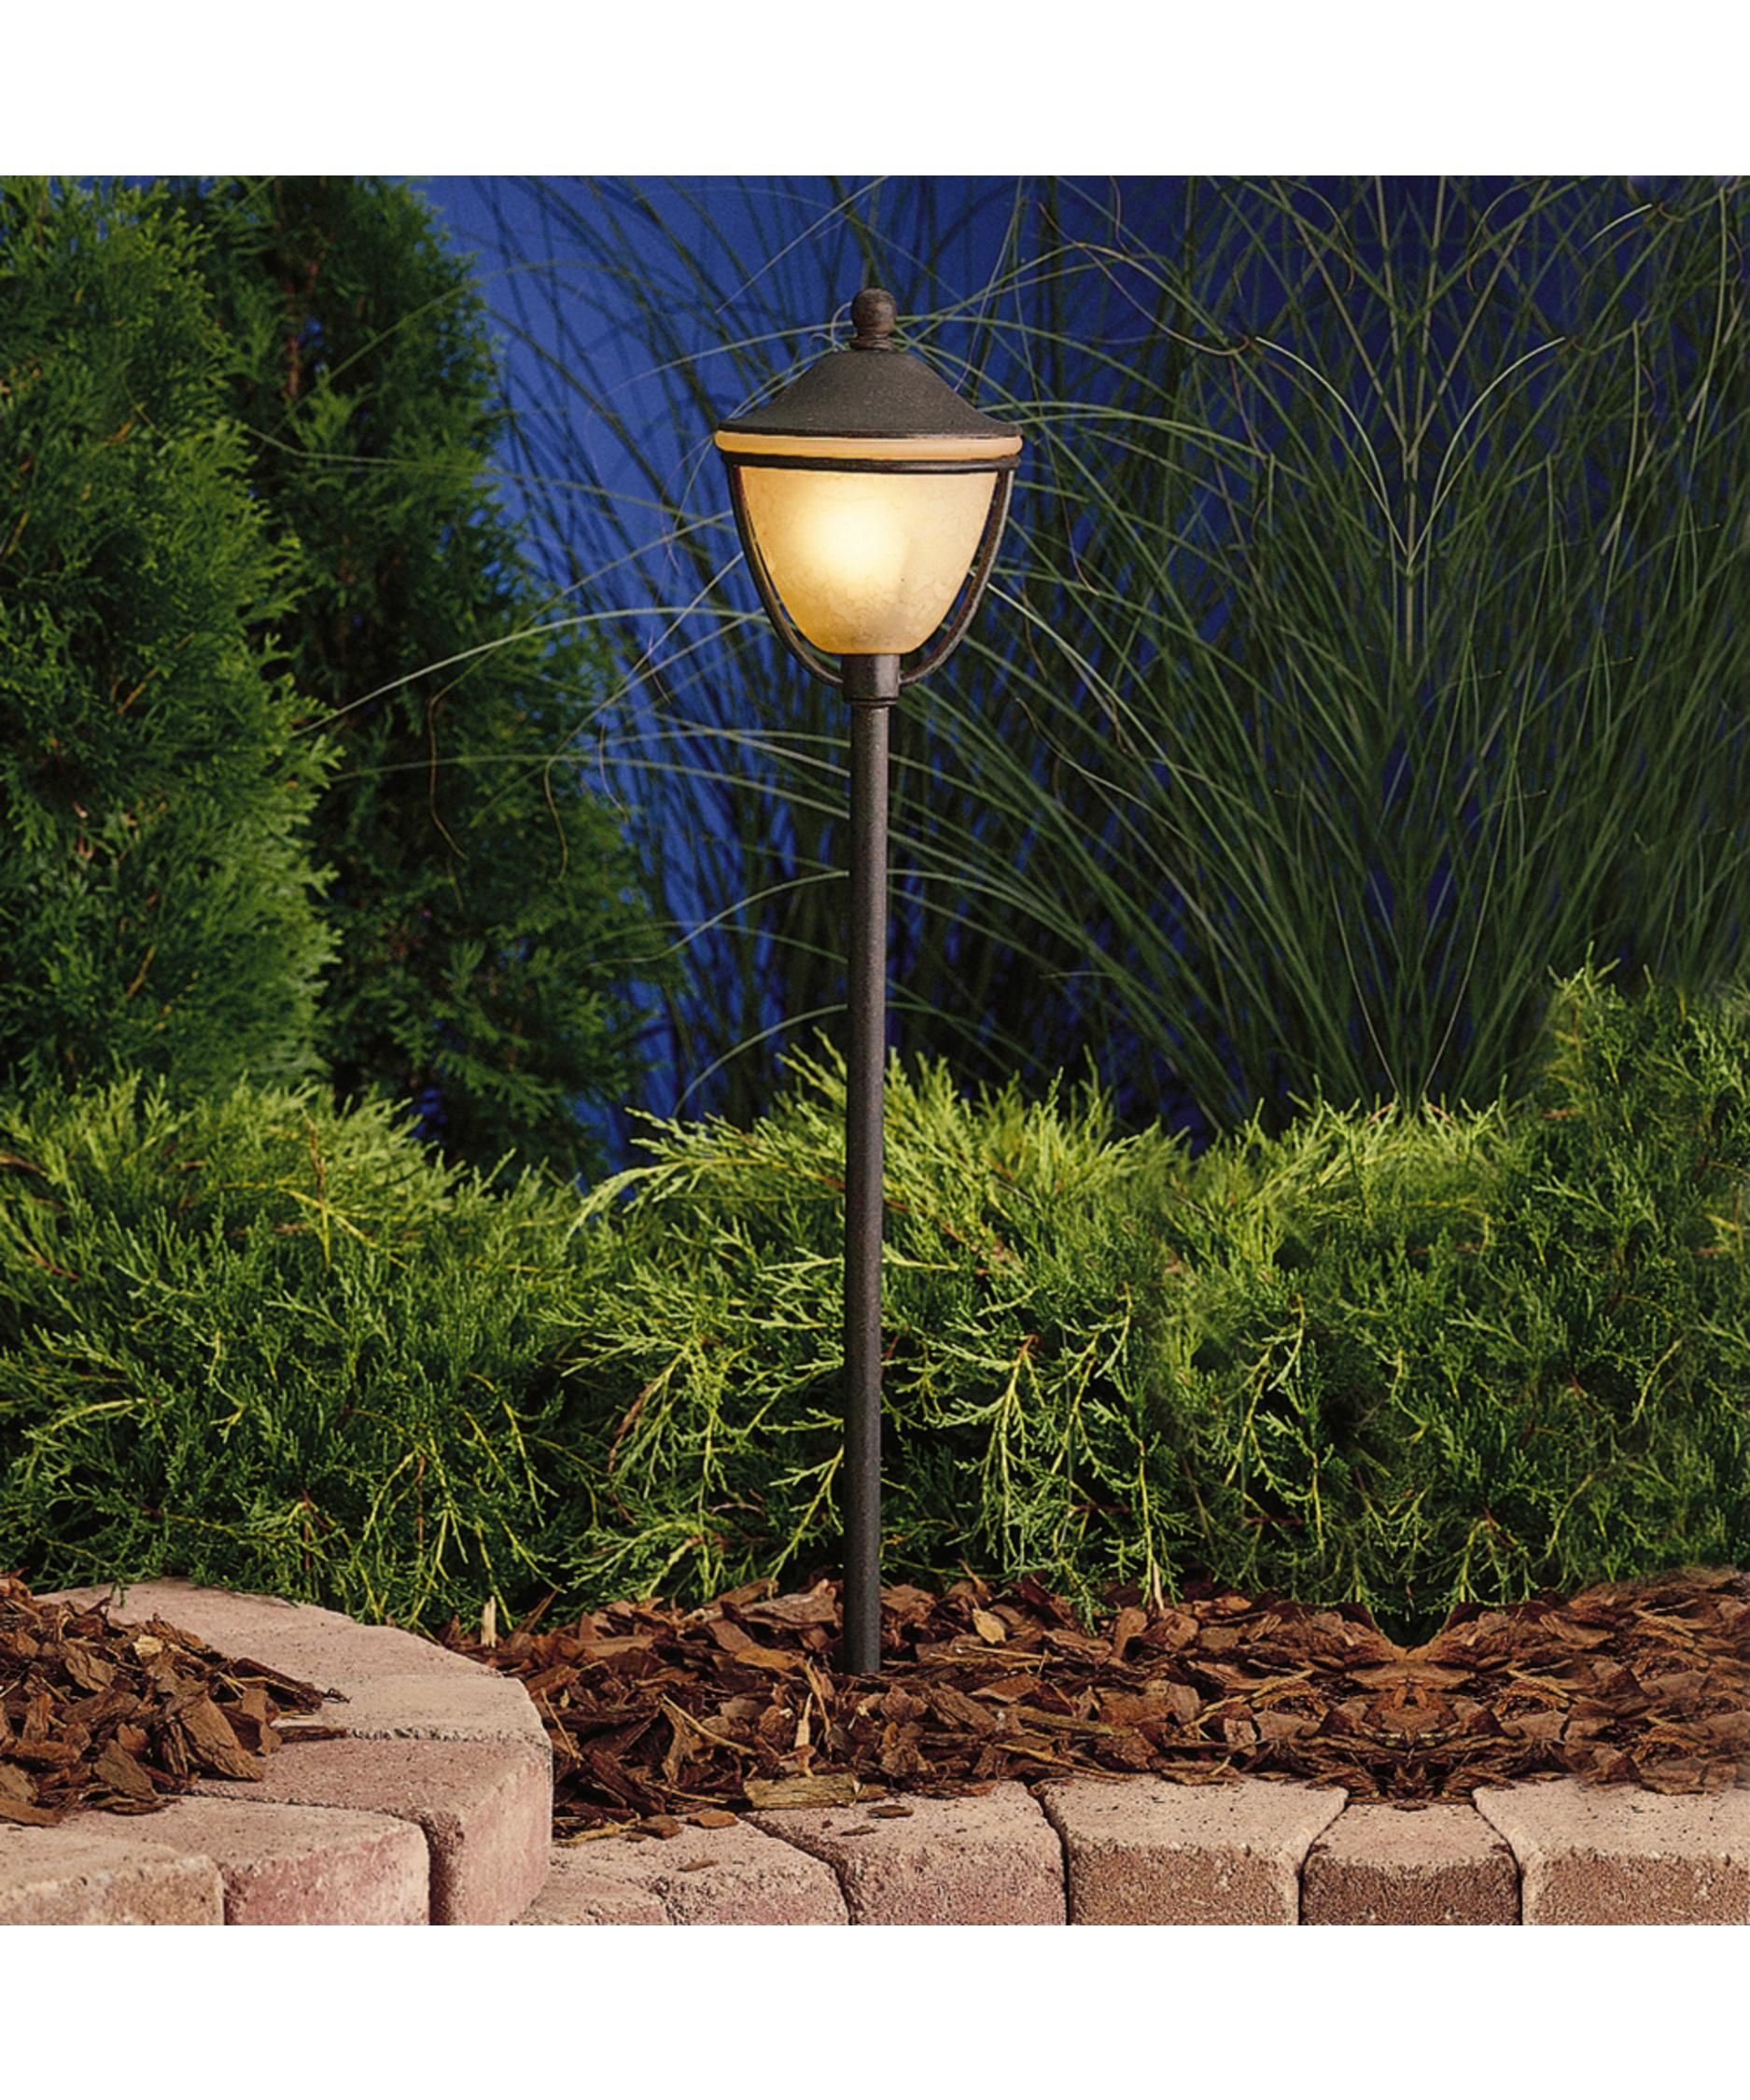 26 Inch Decorative Pathway Light By Kichler Lighting Pathway Lighting Landscape Lighting Path Lights